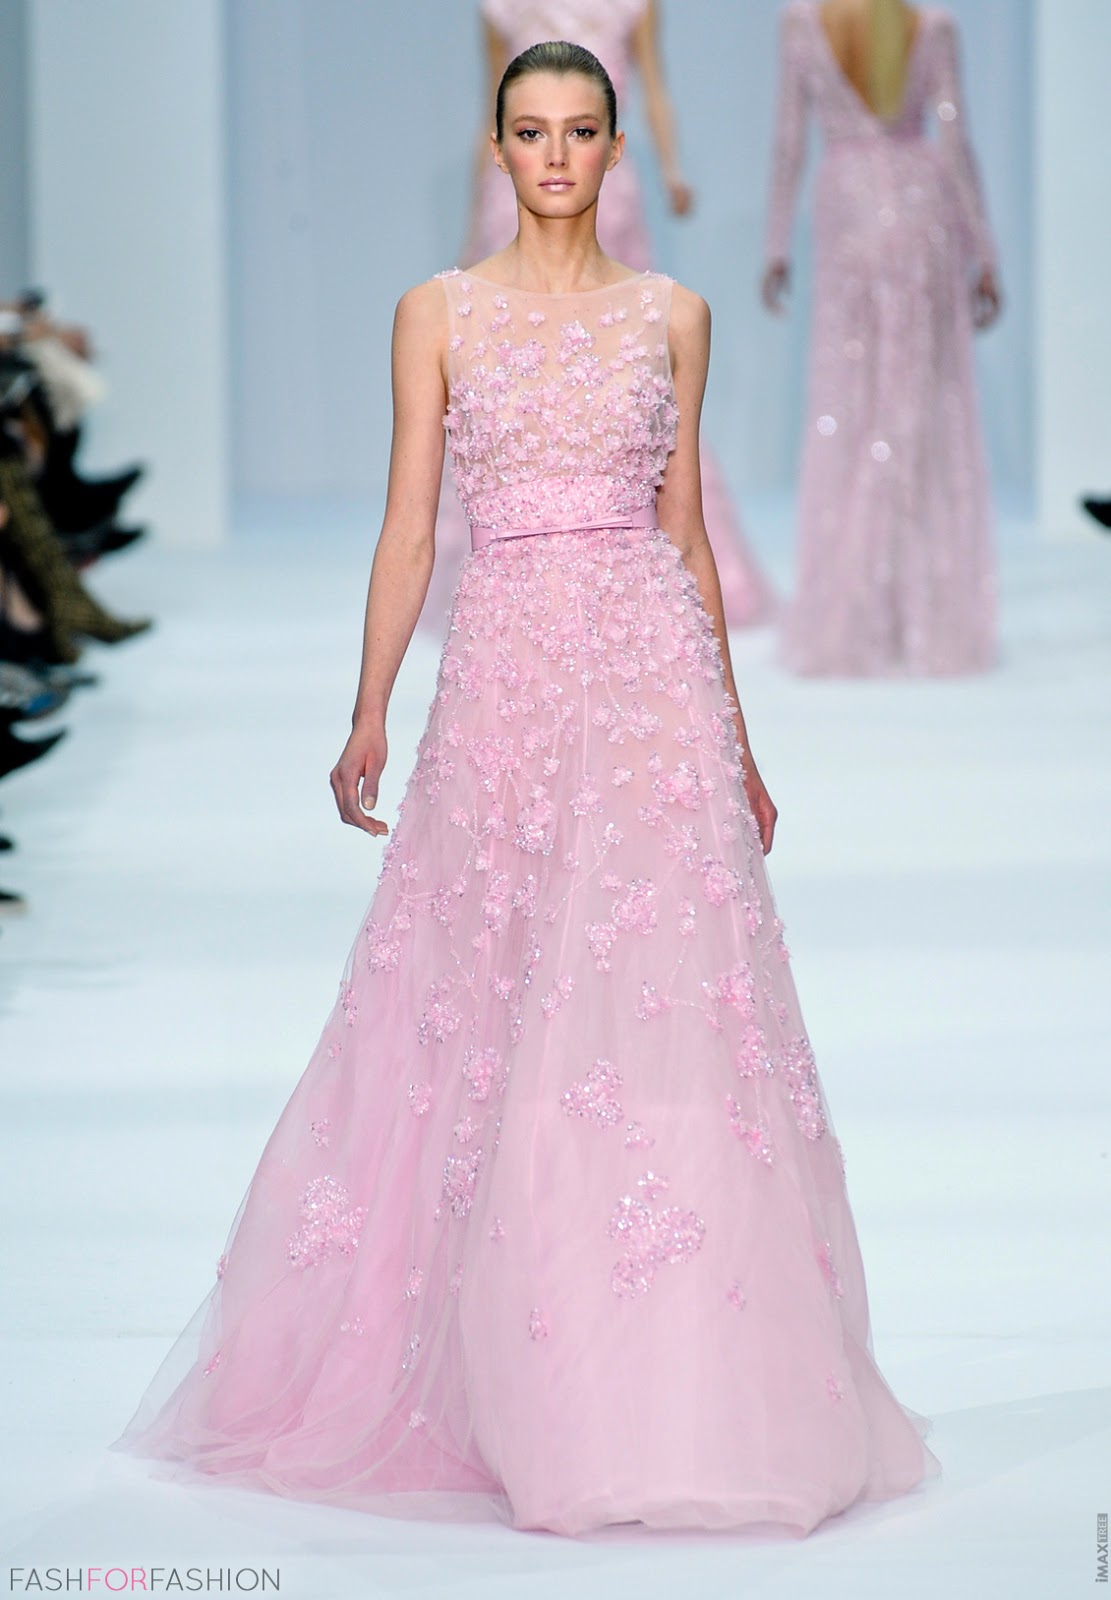 By Elie Saab Light Pink Dress